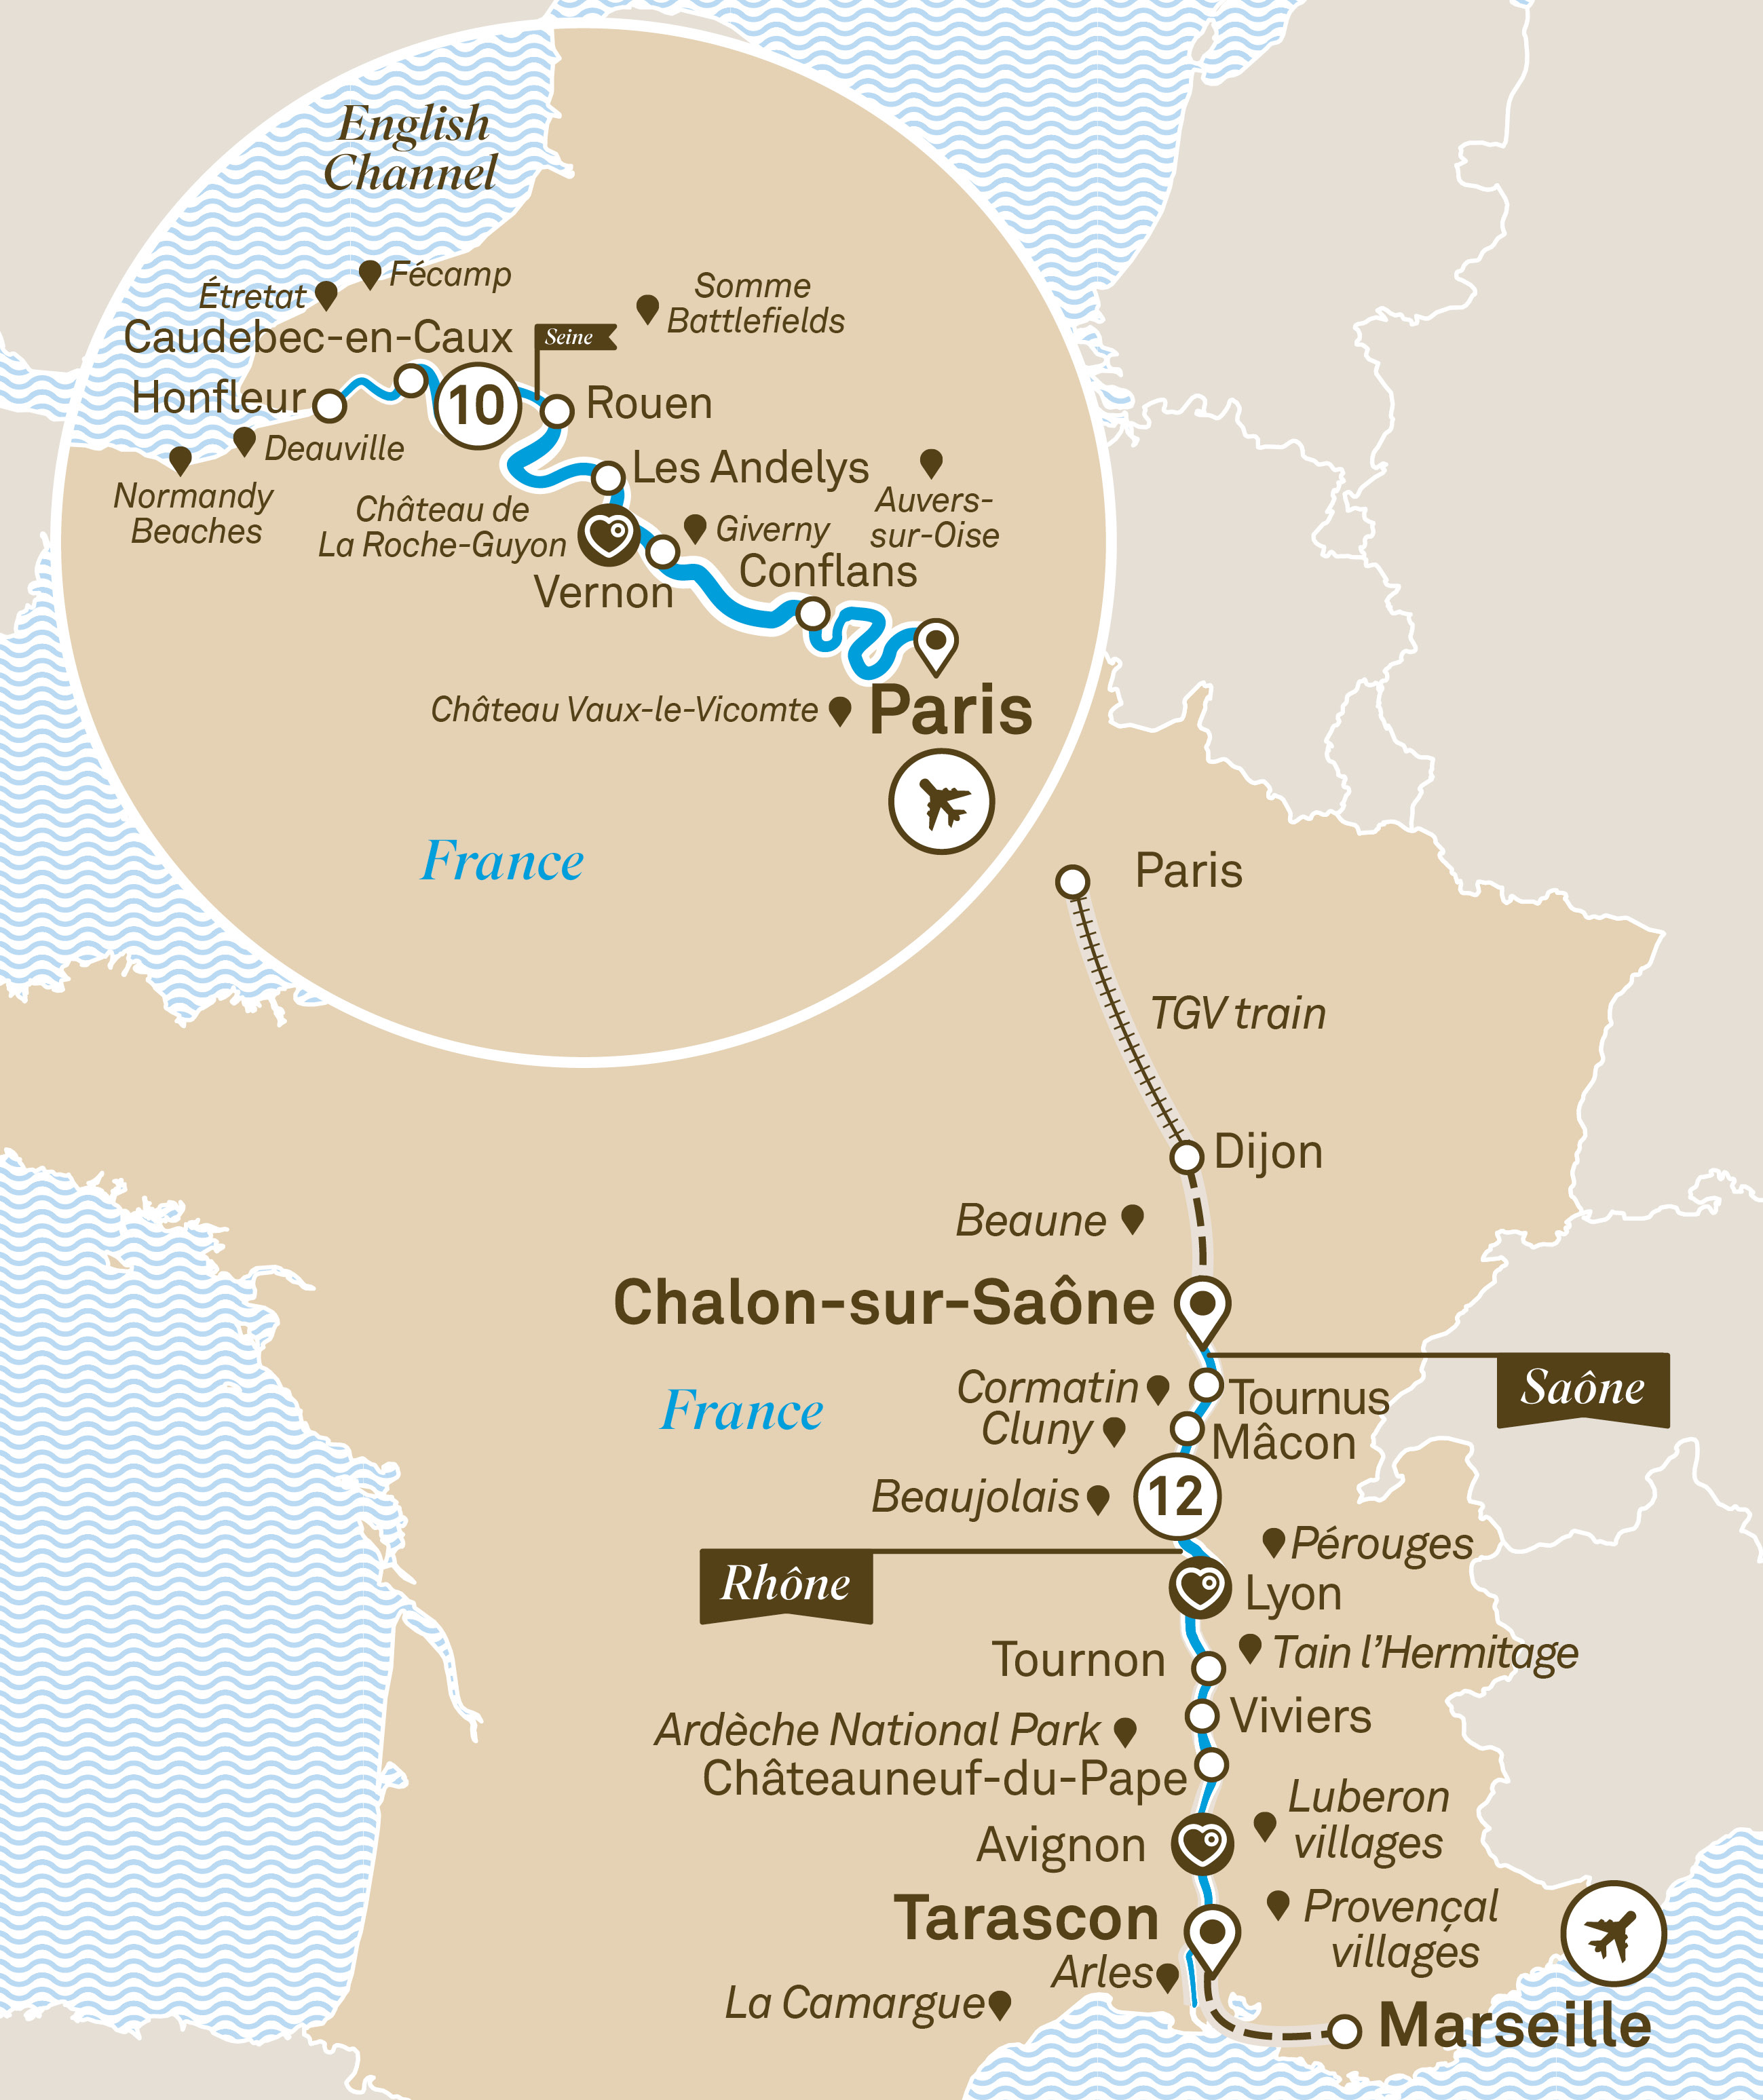 Gems of the Seine & South of France Paris to Nice 2019